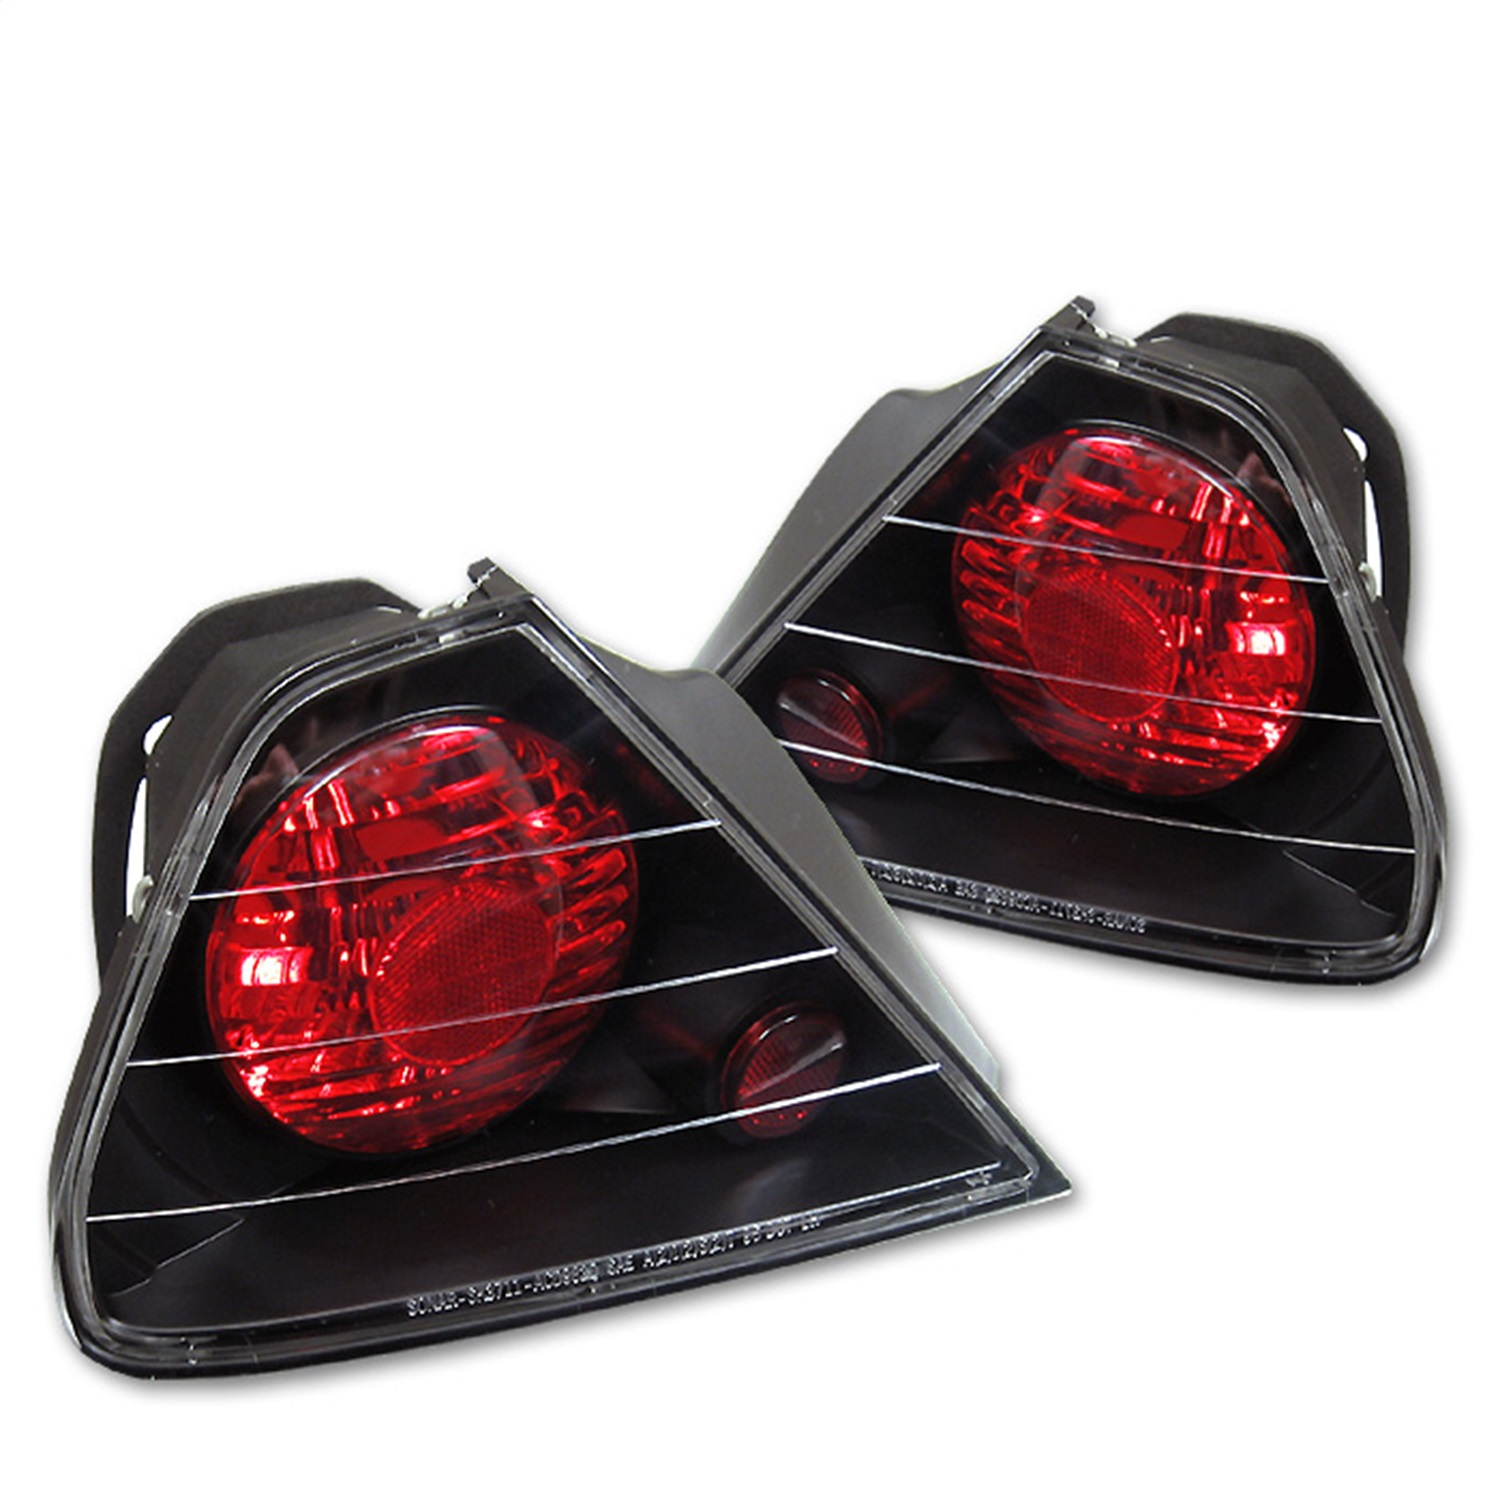 Spyder Auto 5004253 Euro Style Tail Lights Fits 98-00 Accord